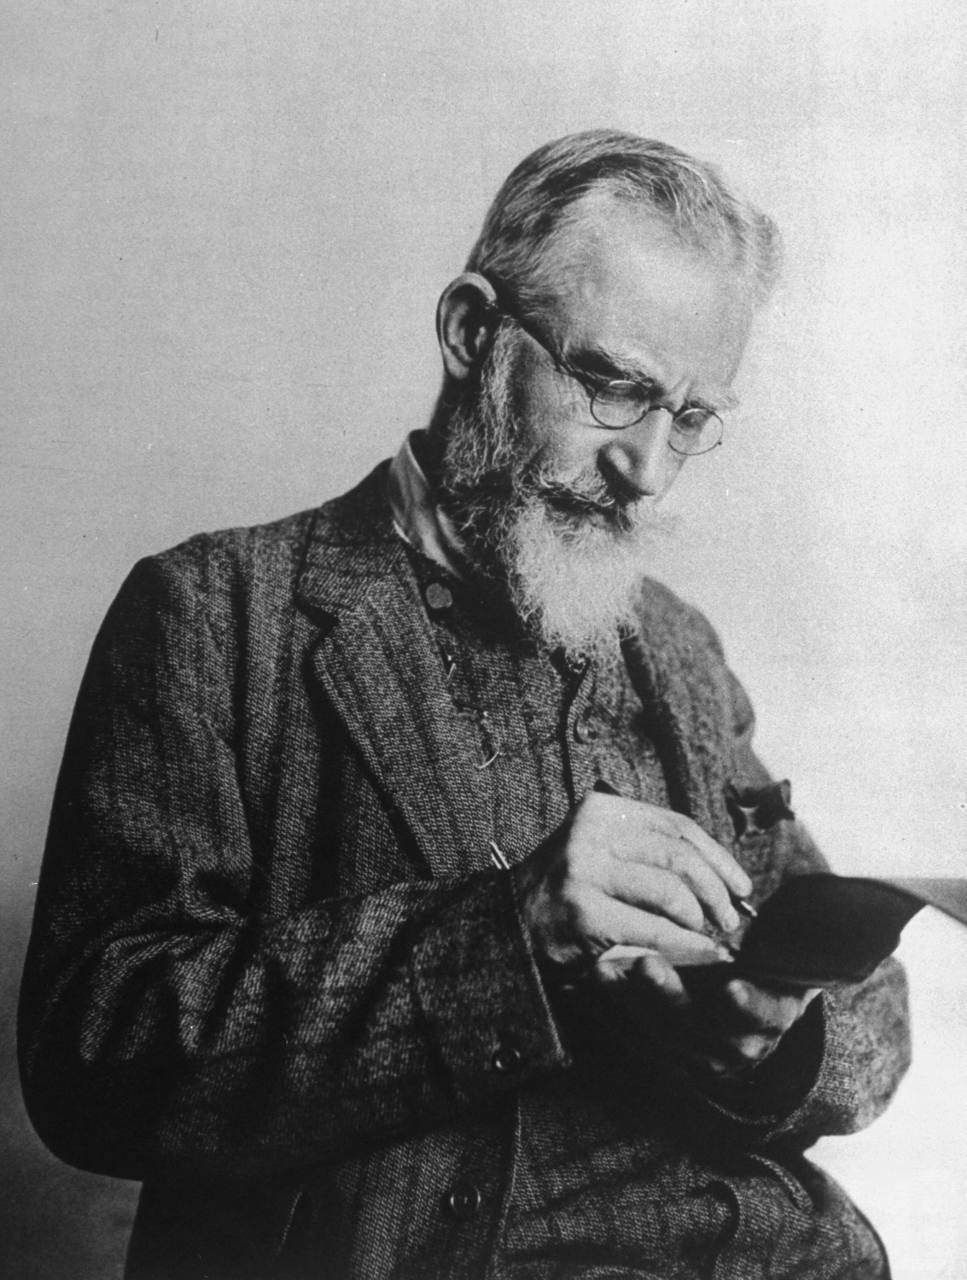 George Bernard Shaw - Public Domain Image from Wikimedia Commons.